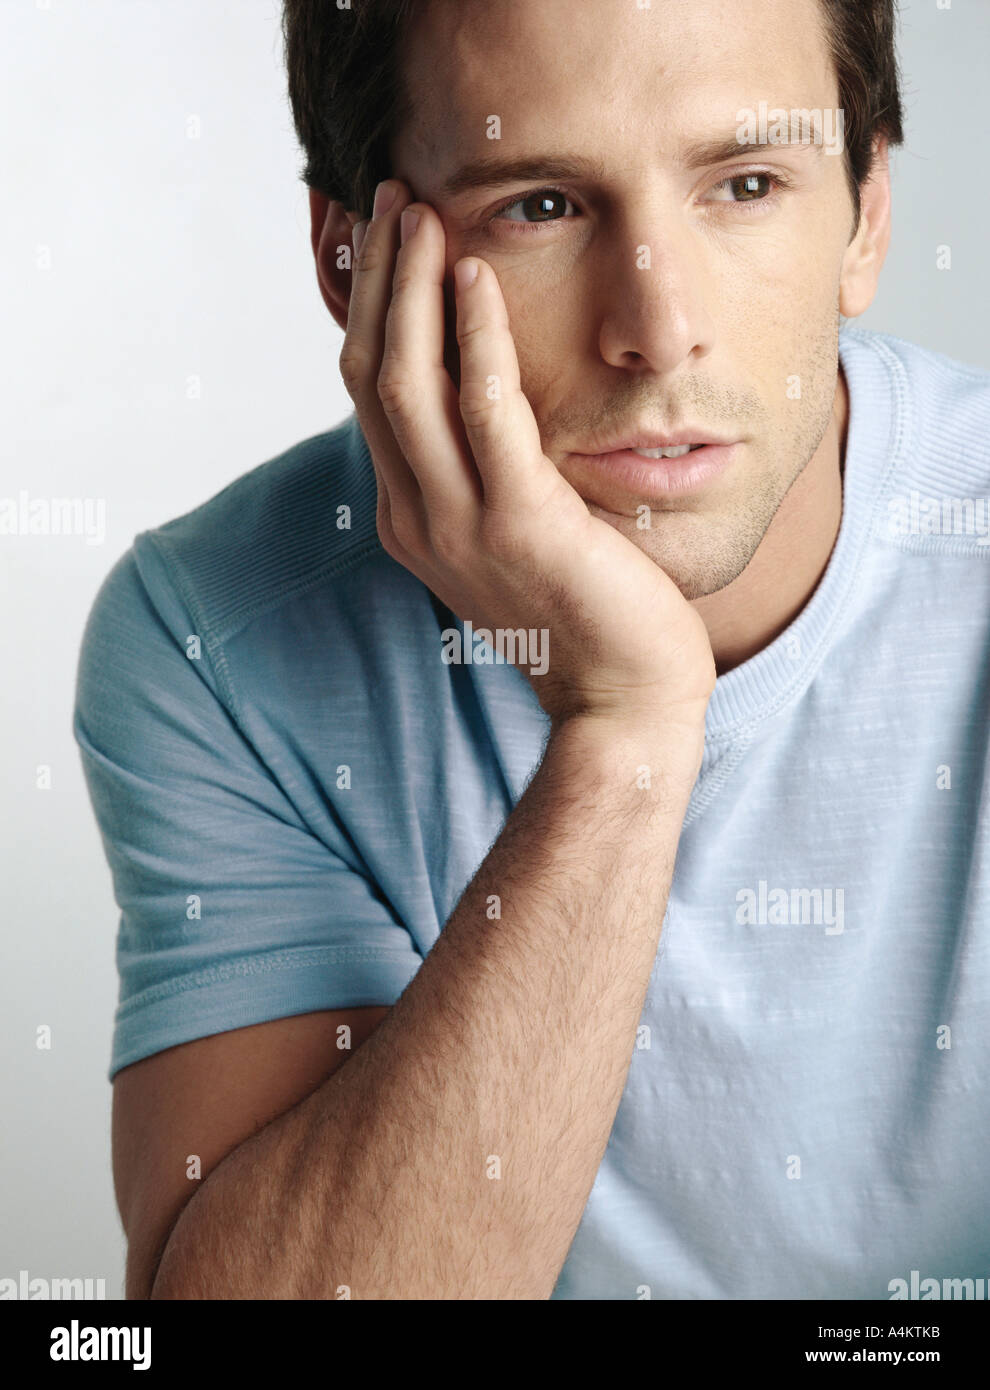 Man Resting Chin On Hand Looking Away Close Up Stock Photo